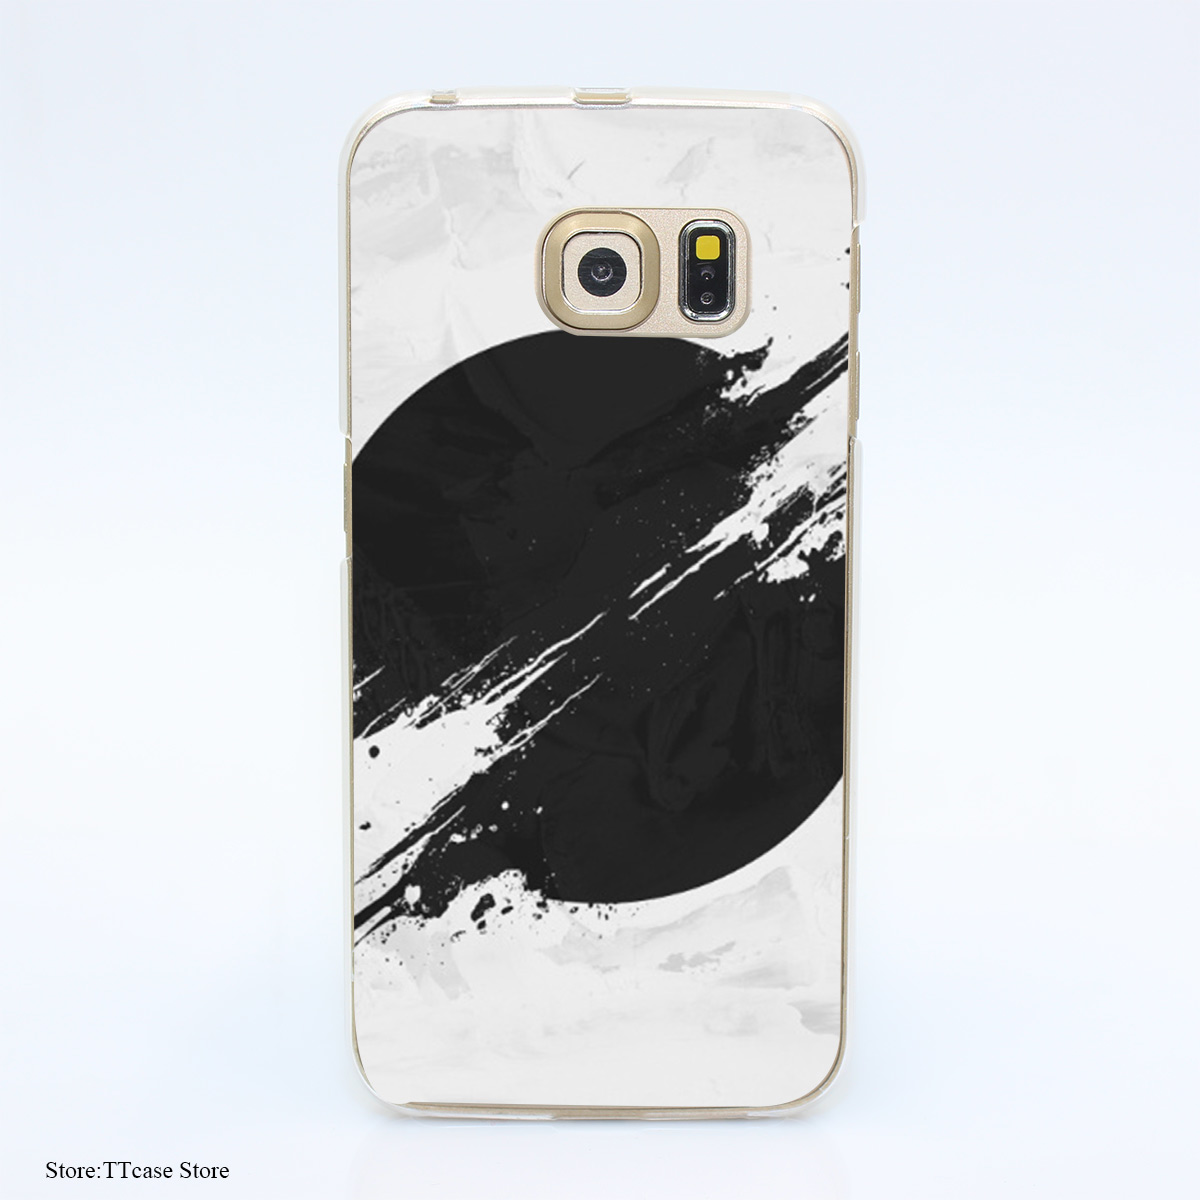 3504G The Sun Is Black Print Hard Transparent Case Cover for Galaxy S3 S4 S5 & Mini S6 S7 & edge